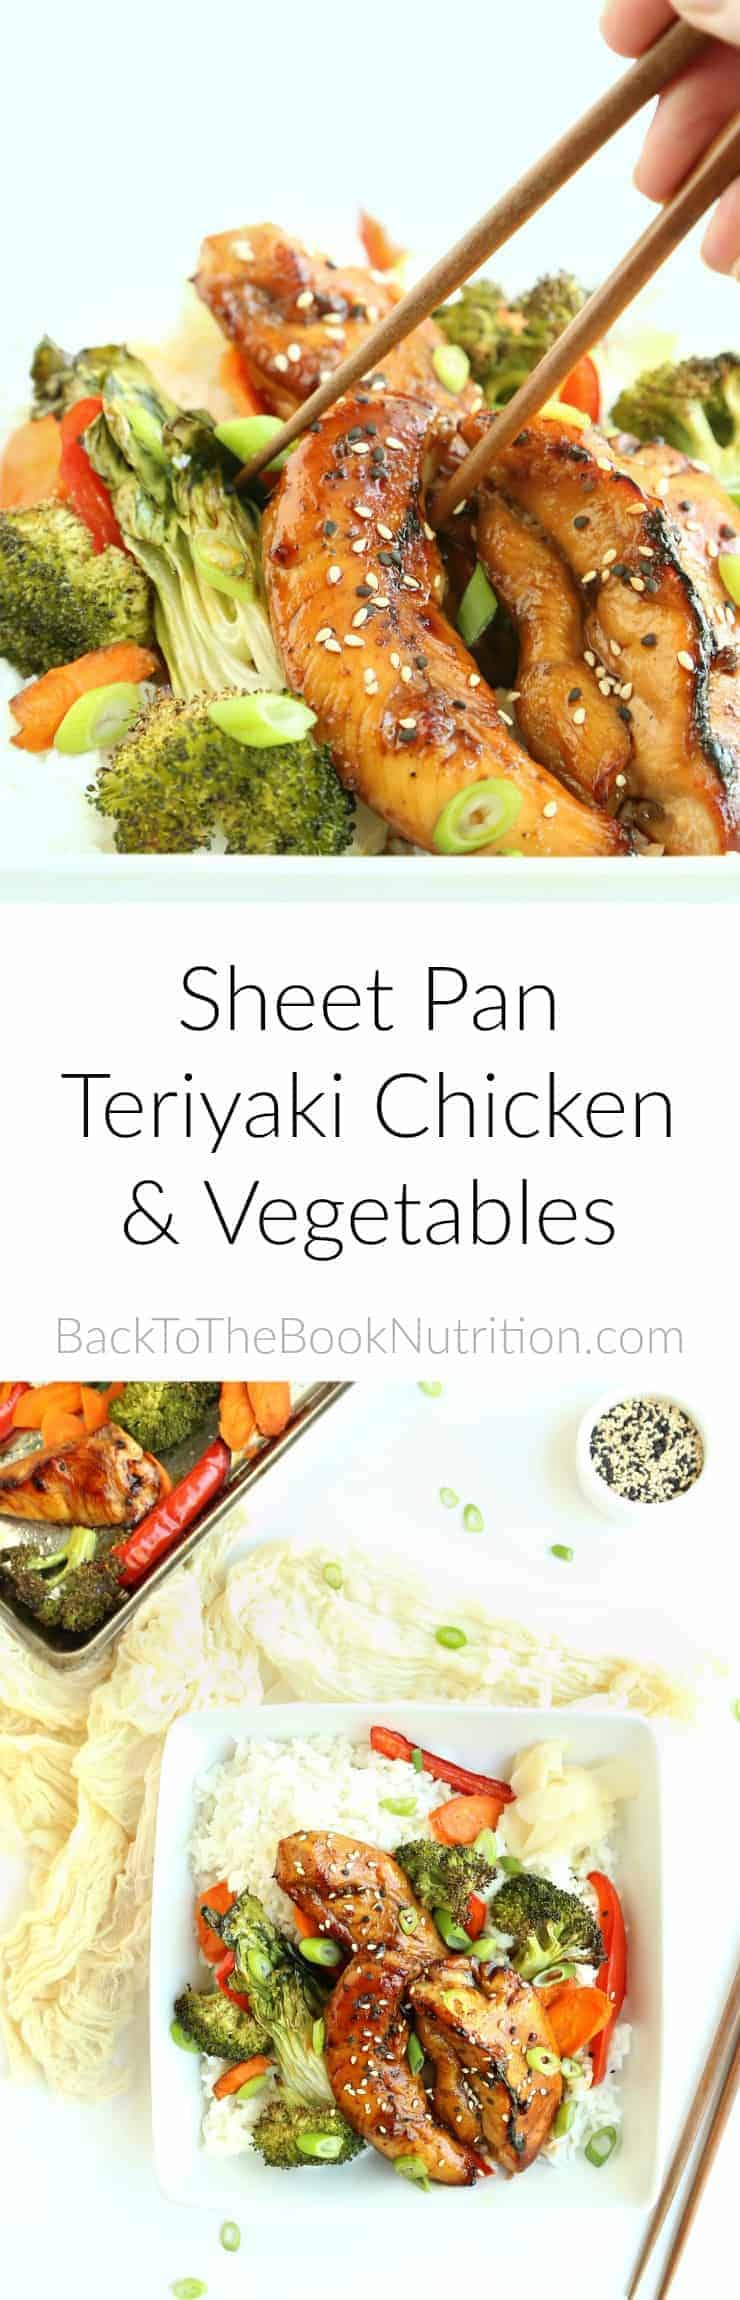 Gluten free sheet pan teriyaki chicken and vegetables